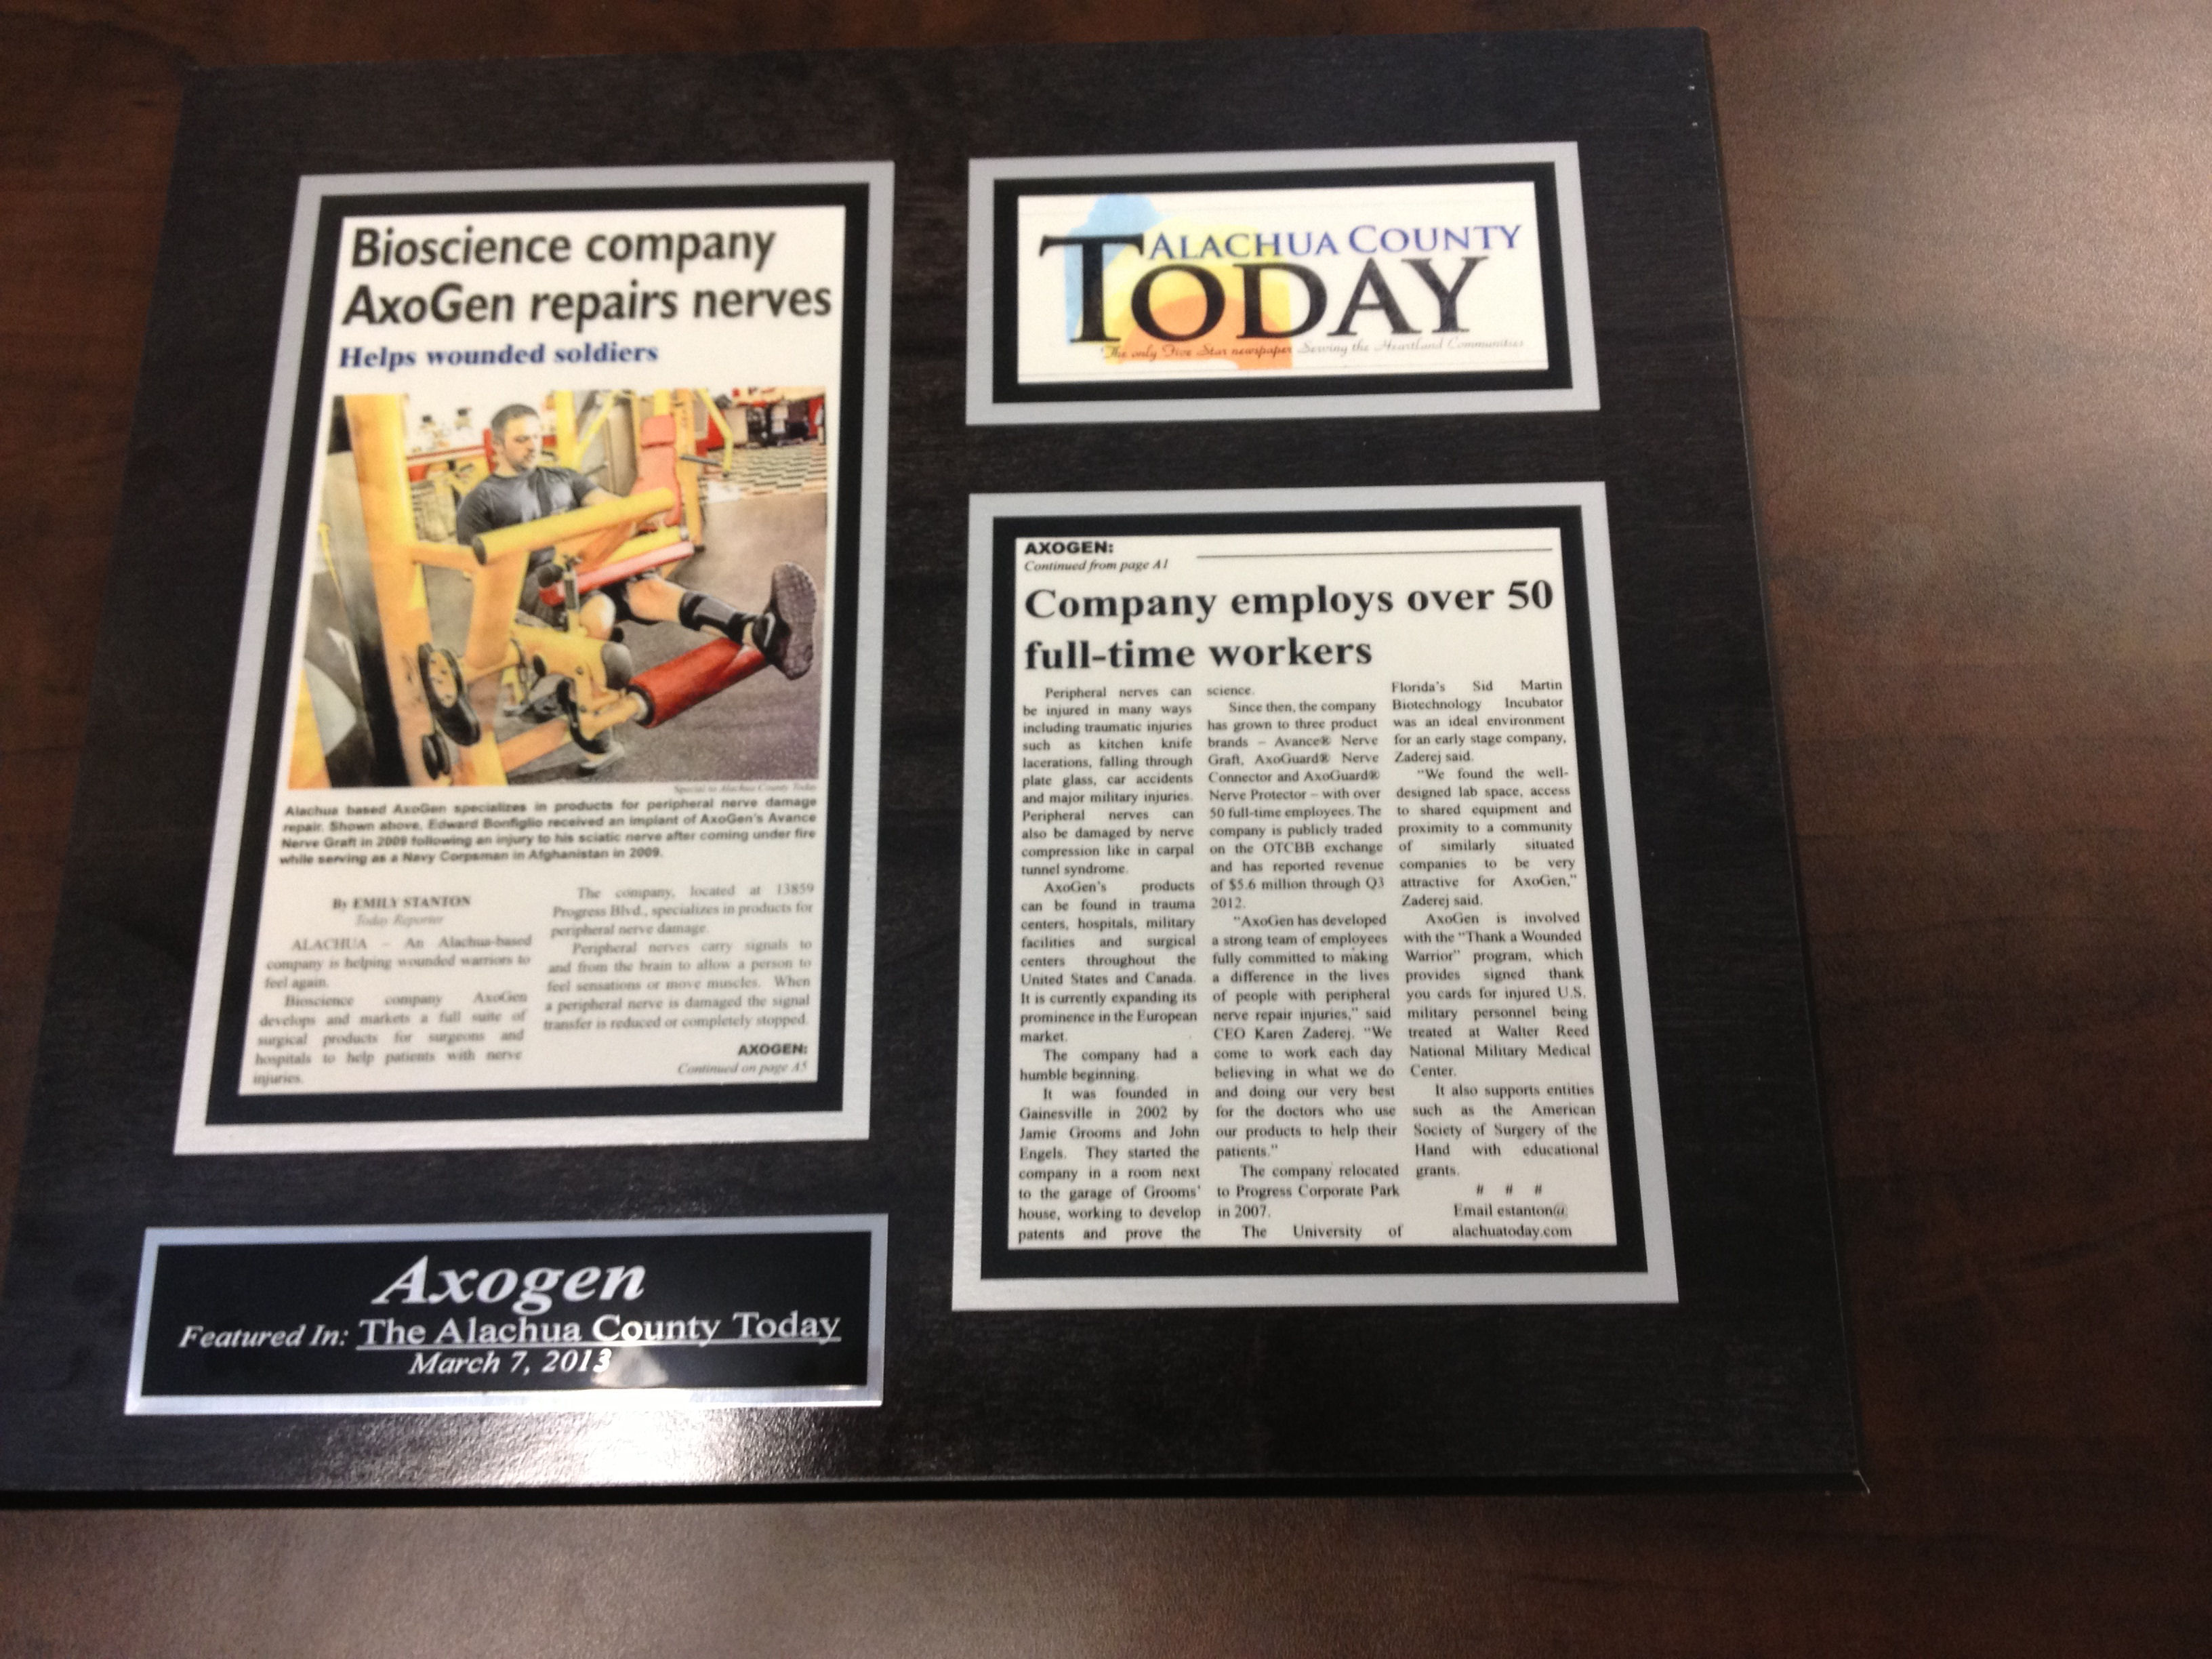 old newspaper articles, frame old newspaper clippings, plaques and awards